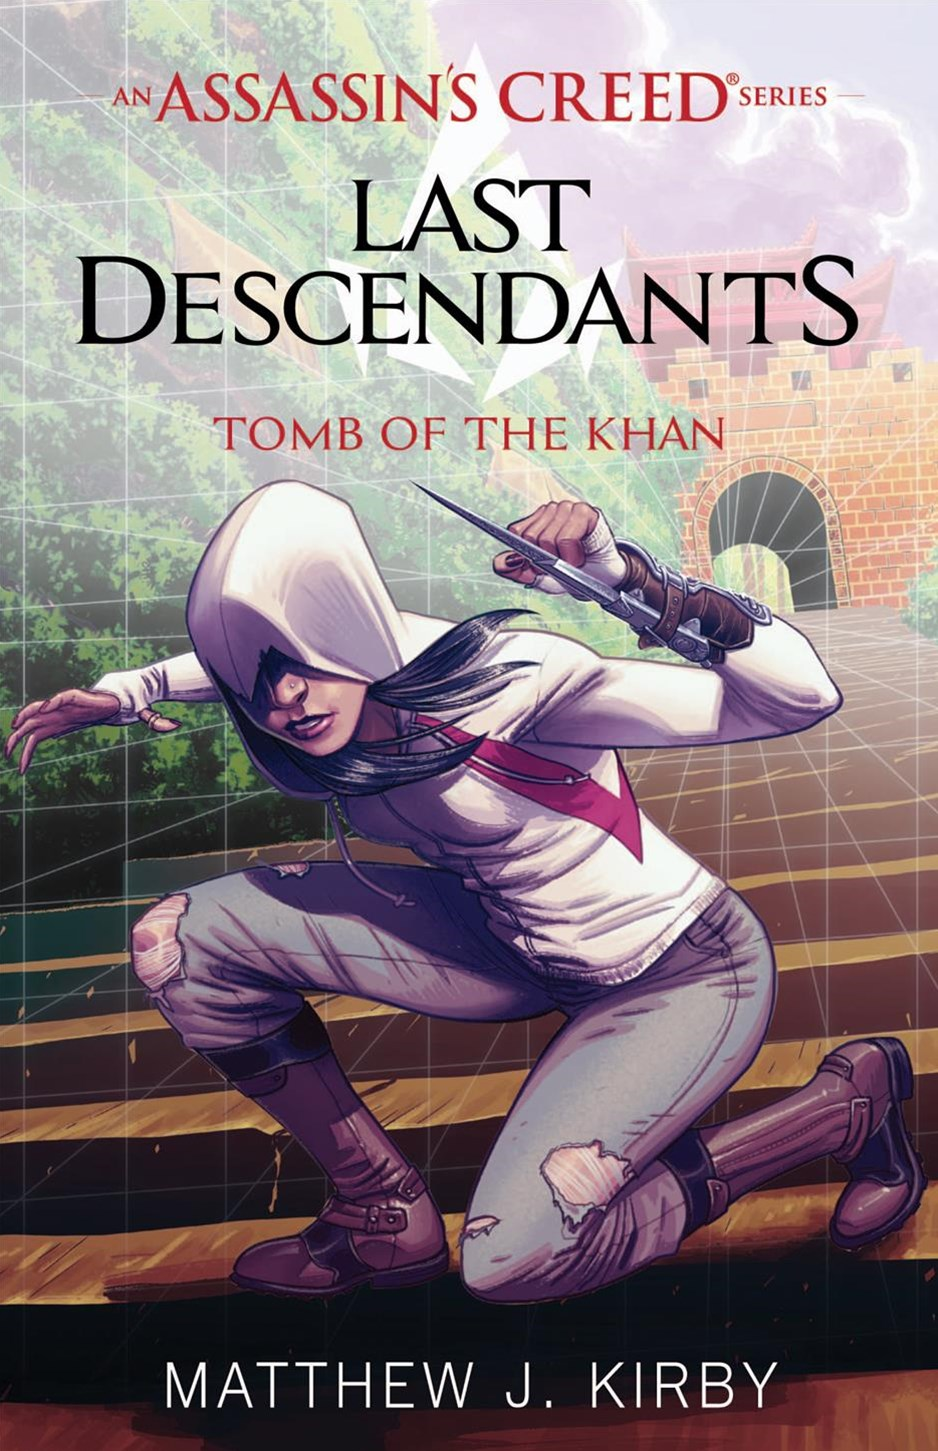 Assassin's Creed: Last Descendants #2: Tomb of the Khan